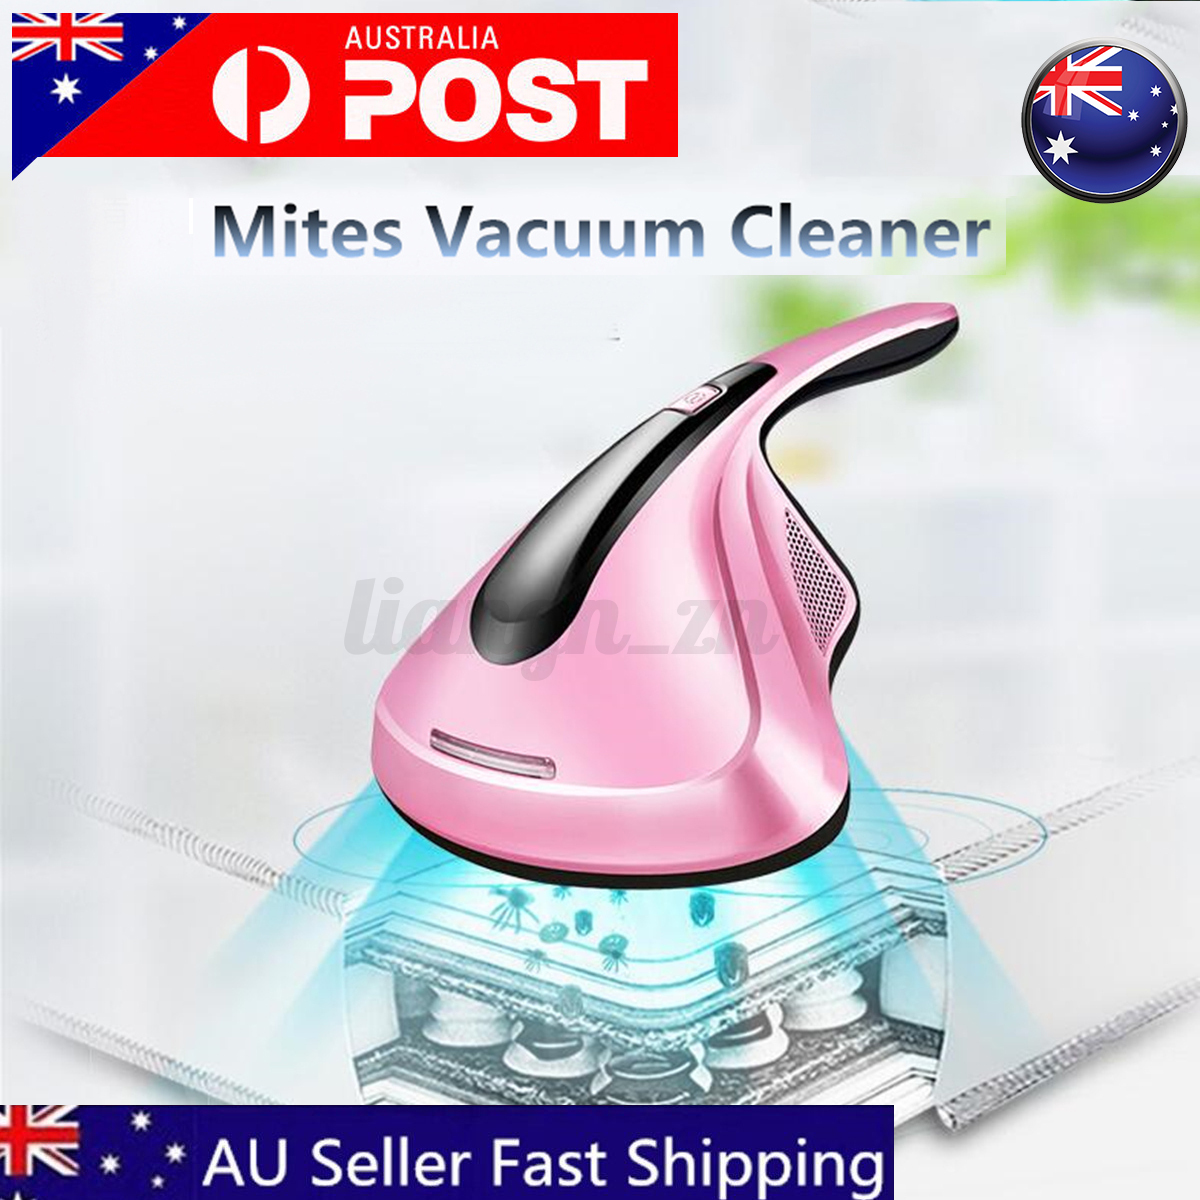 300W Mites Vacuum Cleaner UV Sterilization Handheld Home Bed Mattress Gold Red